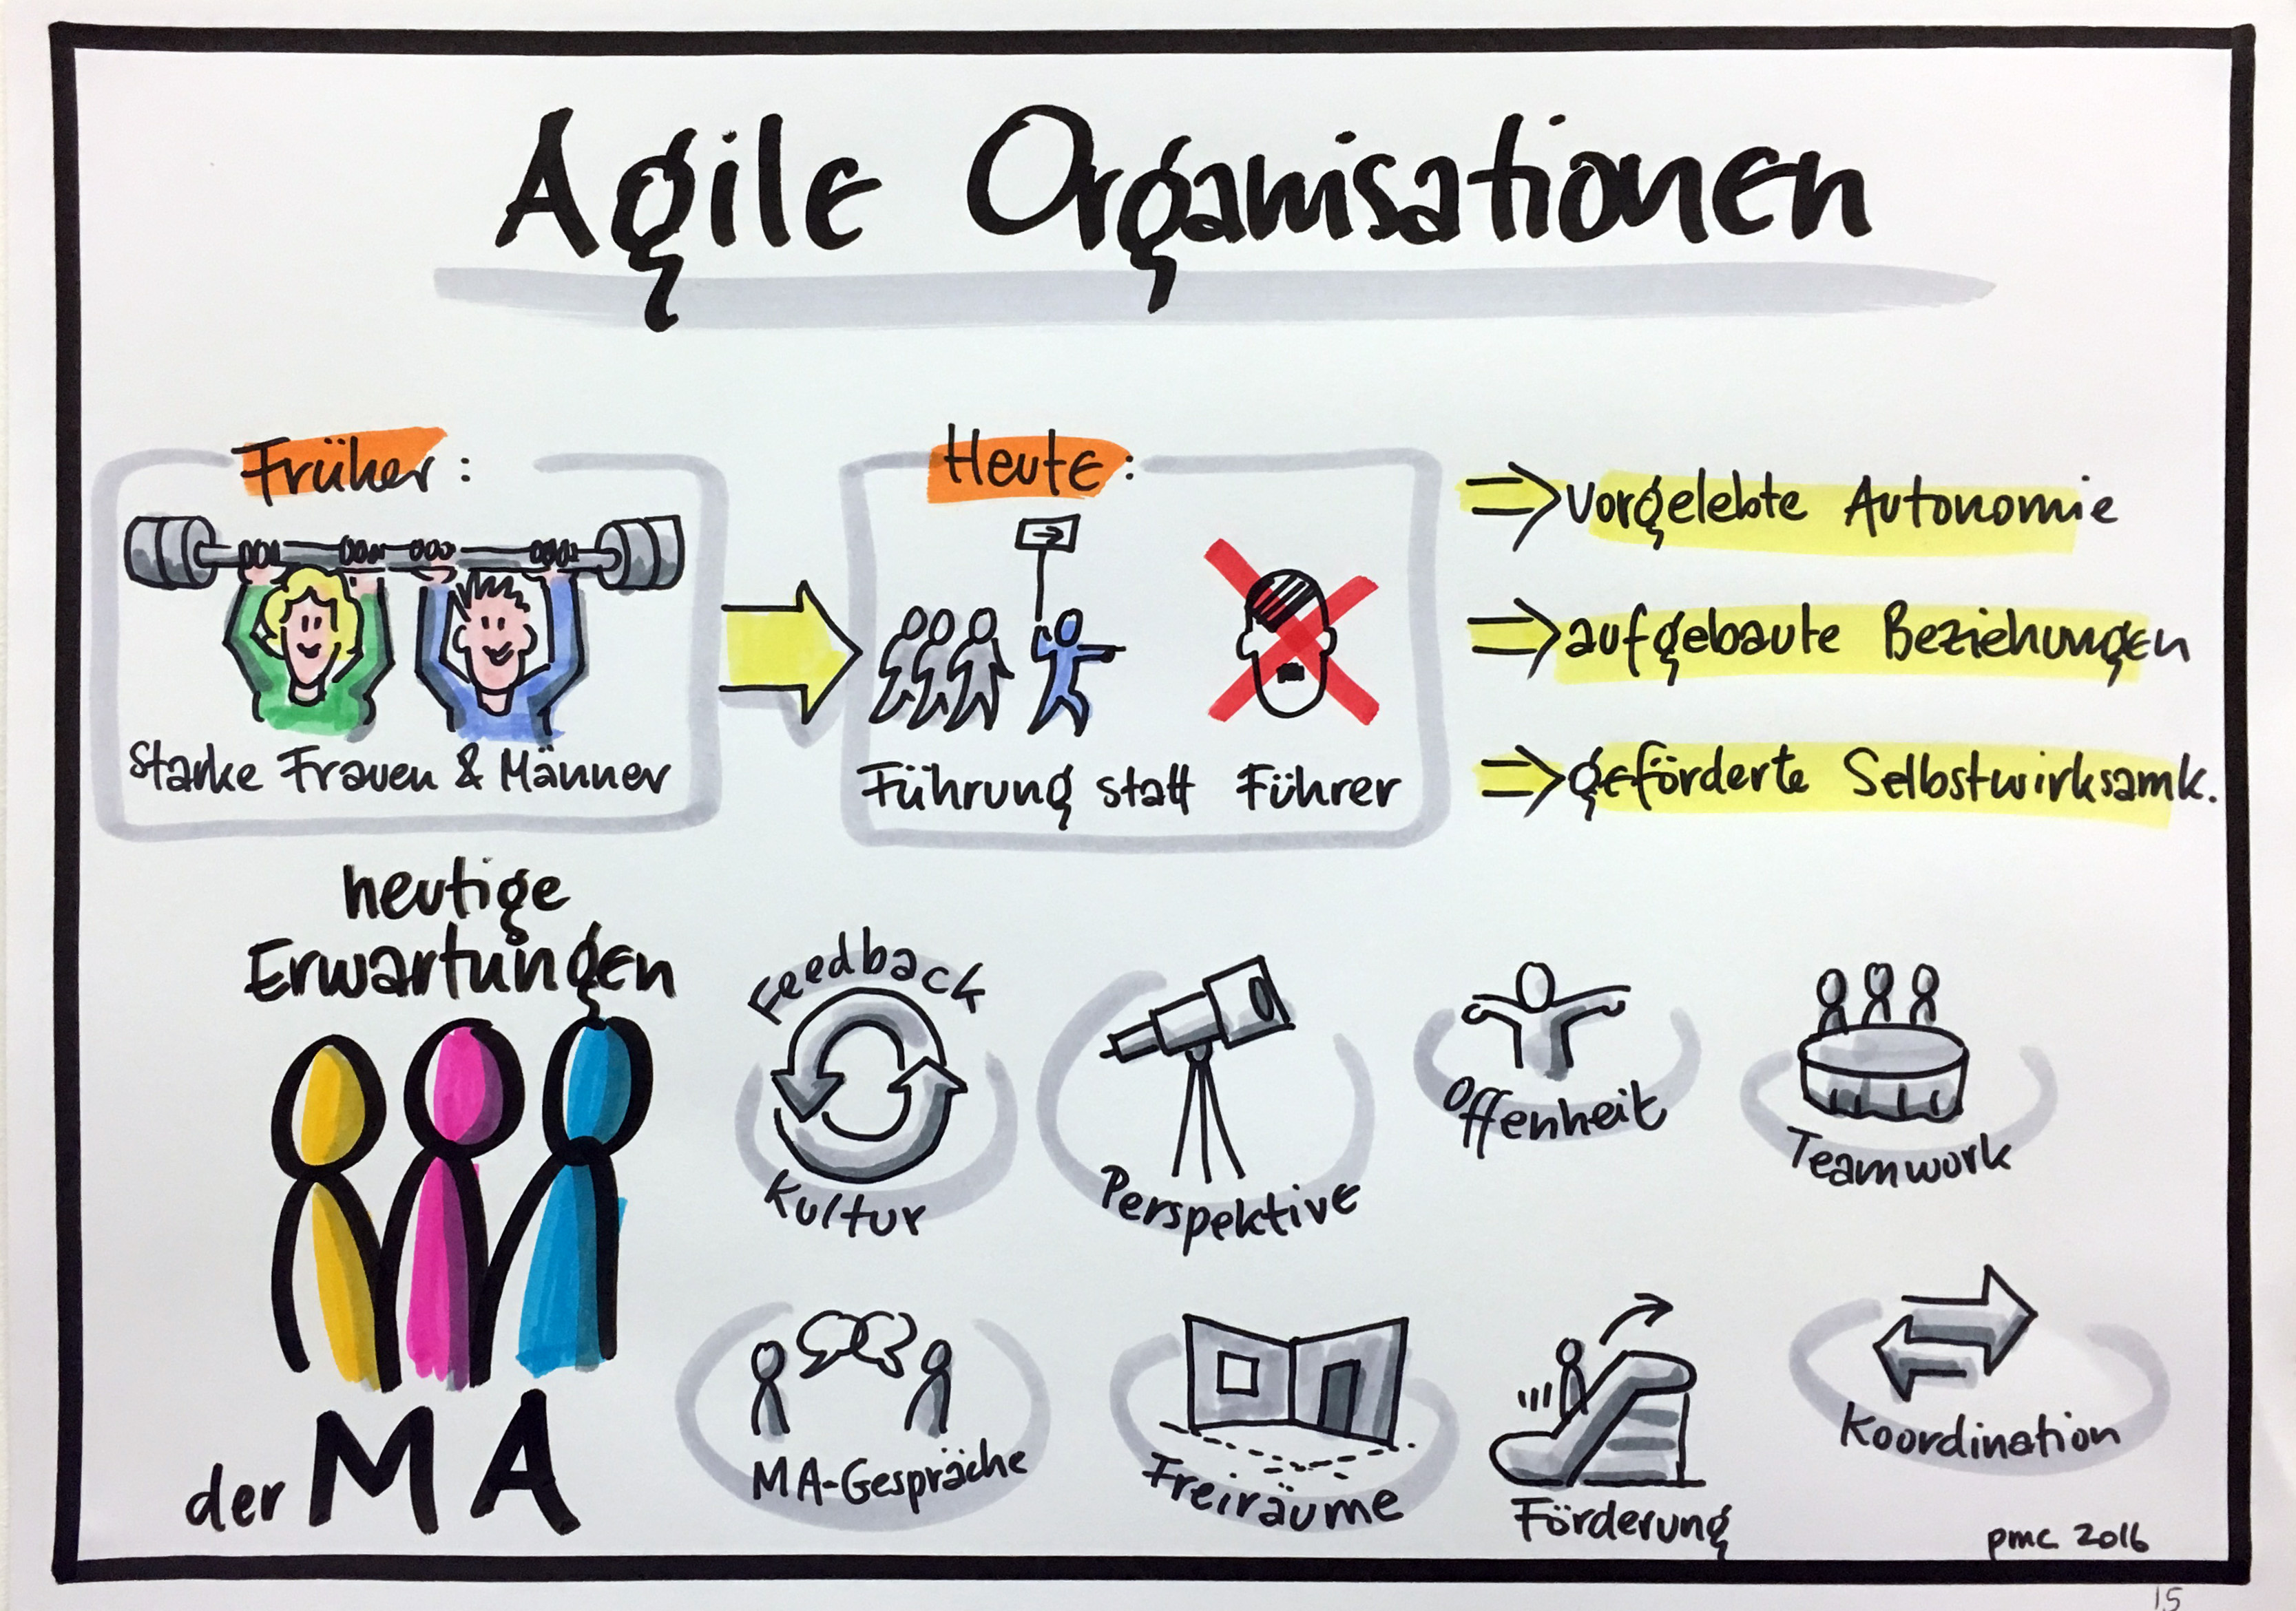 Agile Tools_Innovations-Symposium_2016_C12.1